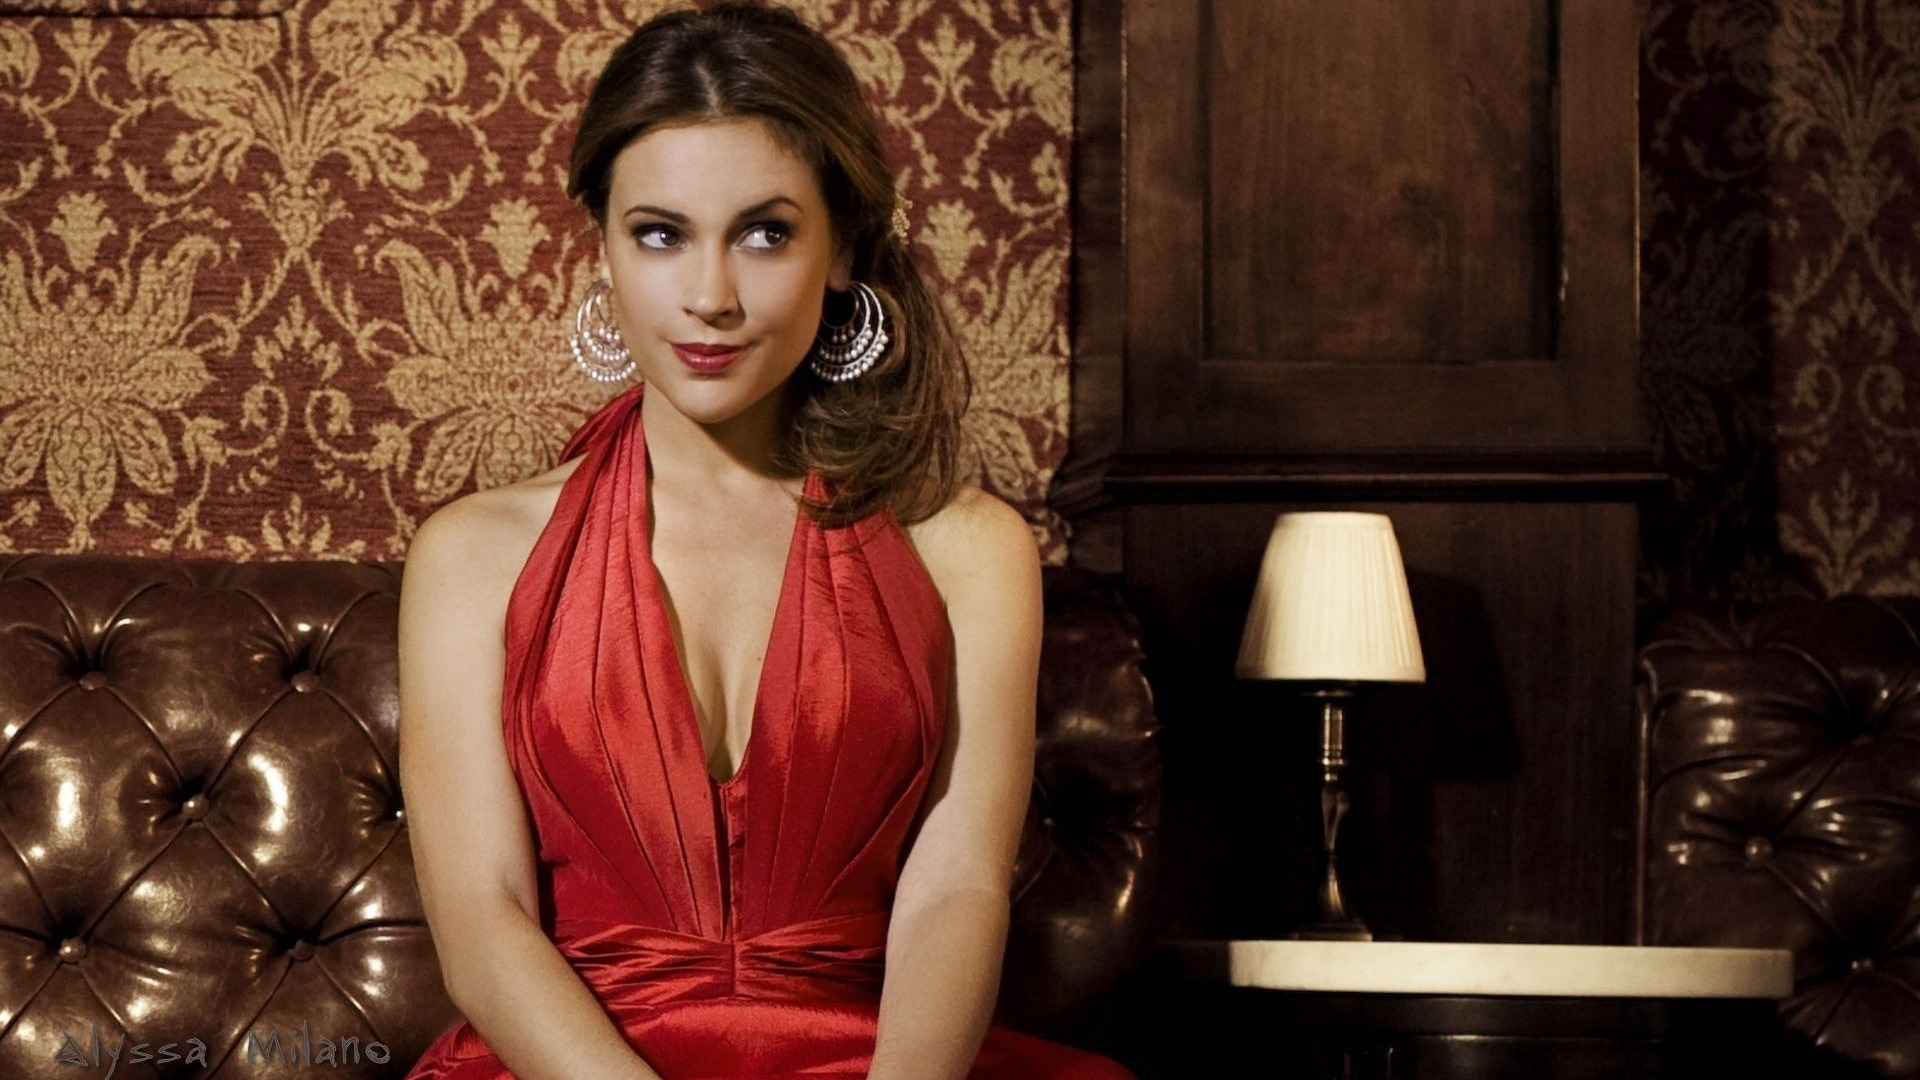 Alyssa Milano #047 - 1920x1080 Wallpapers Pictures Photos Images